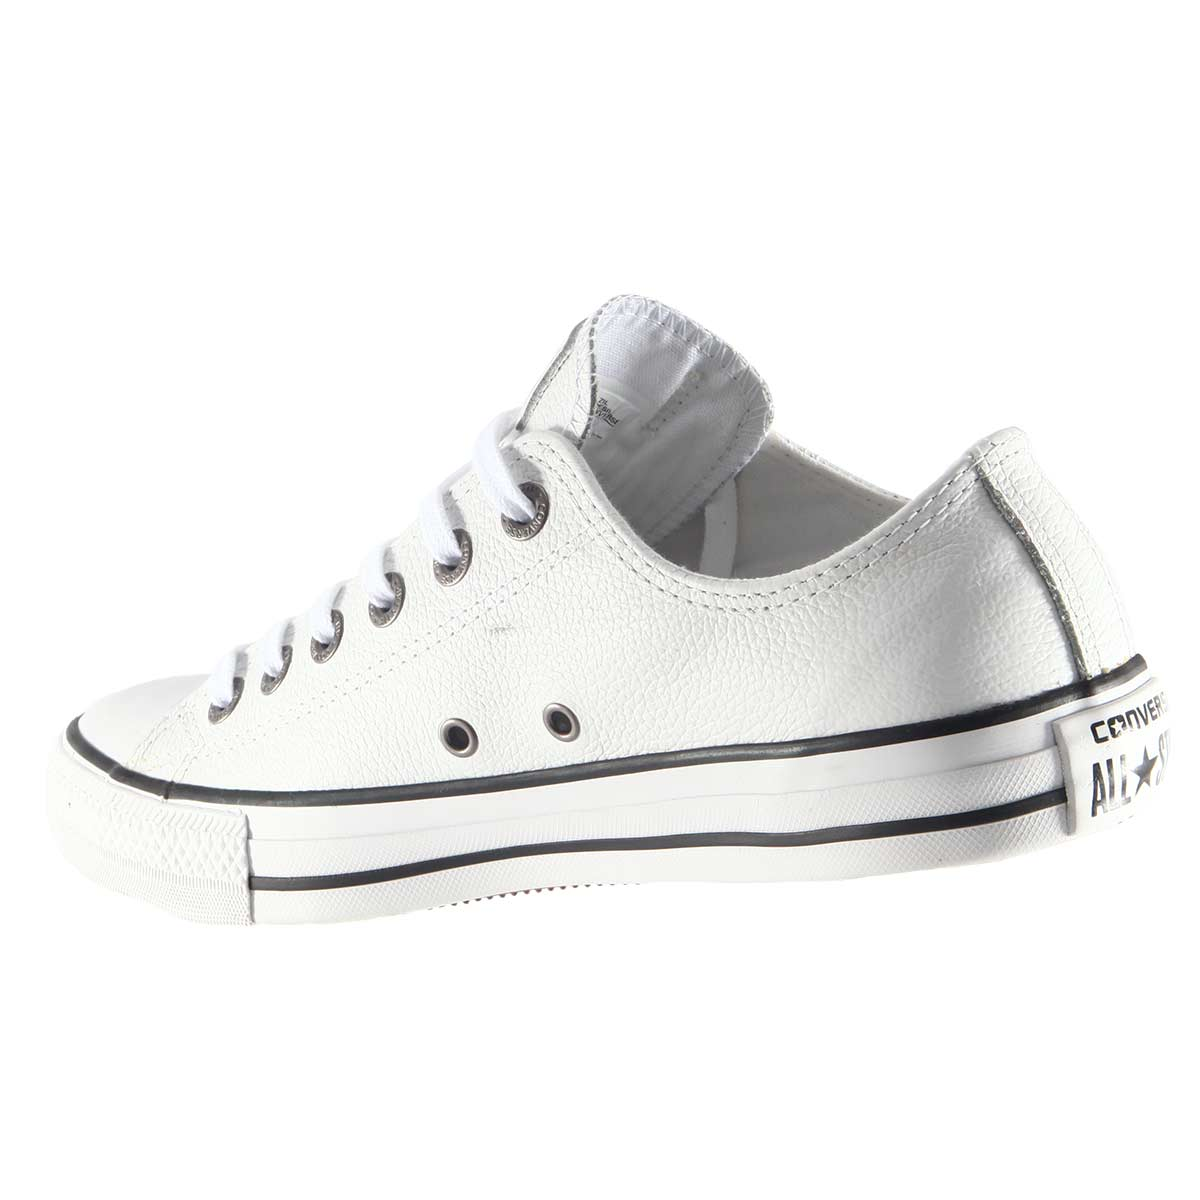 Tênis Converse All Star Couro Original CT0448